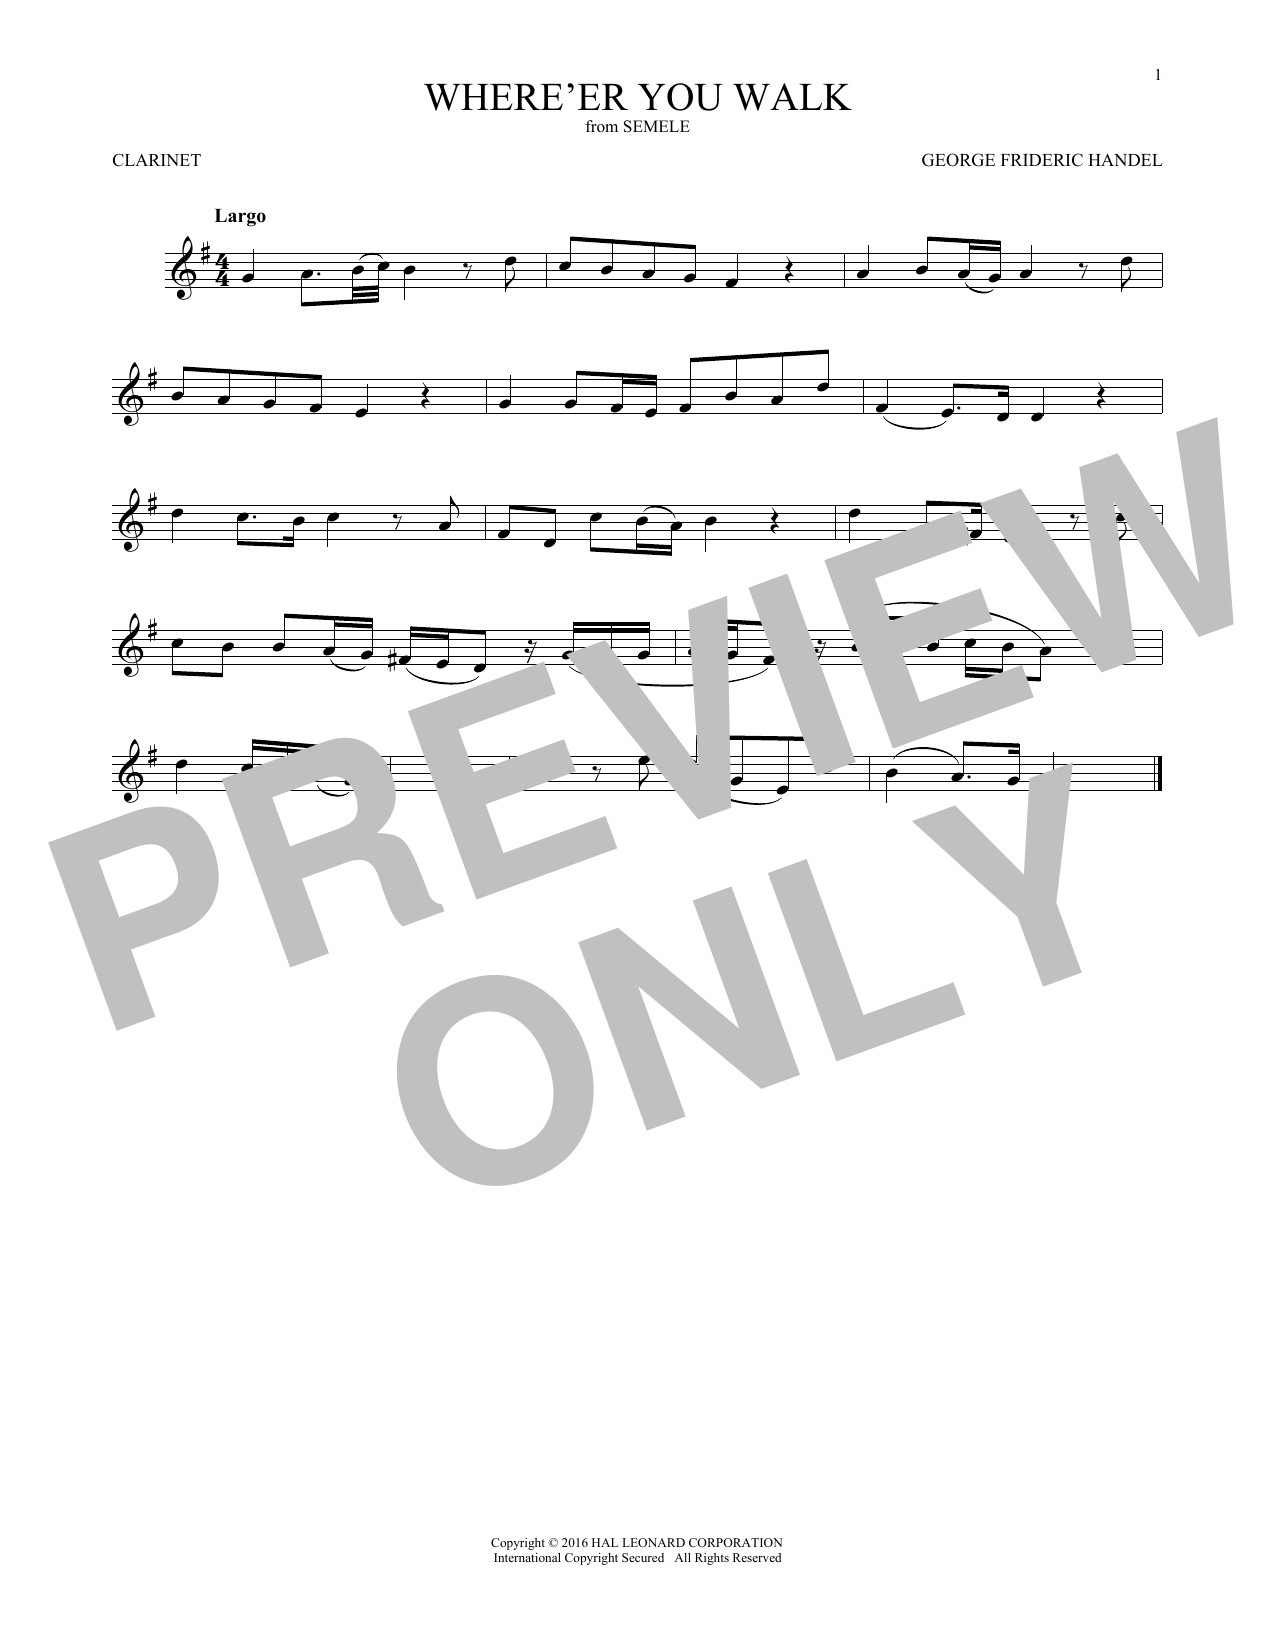 George Frideric Handel Where E'er You Walk sheet music notes and chords. Download Printable PDF.